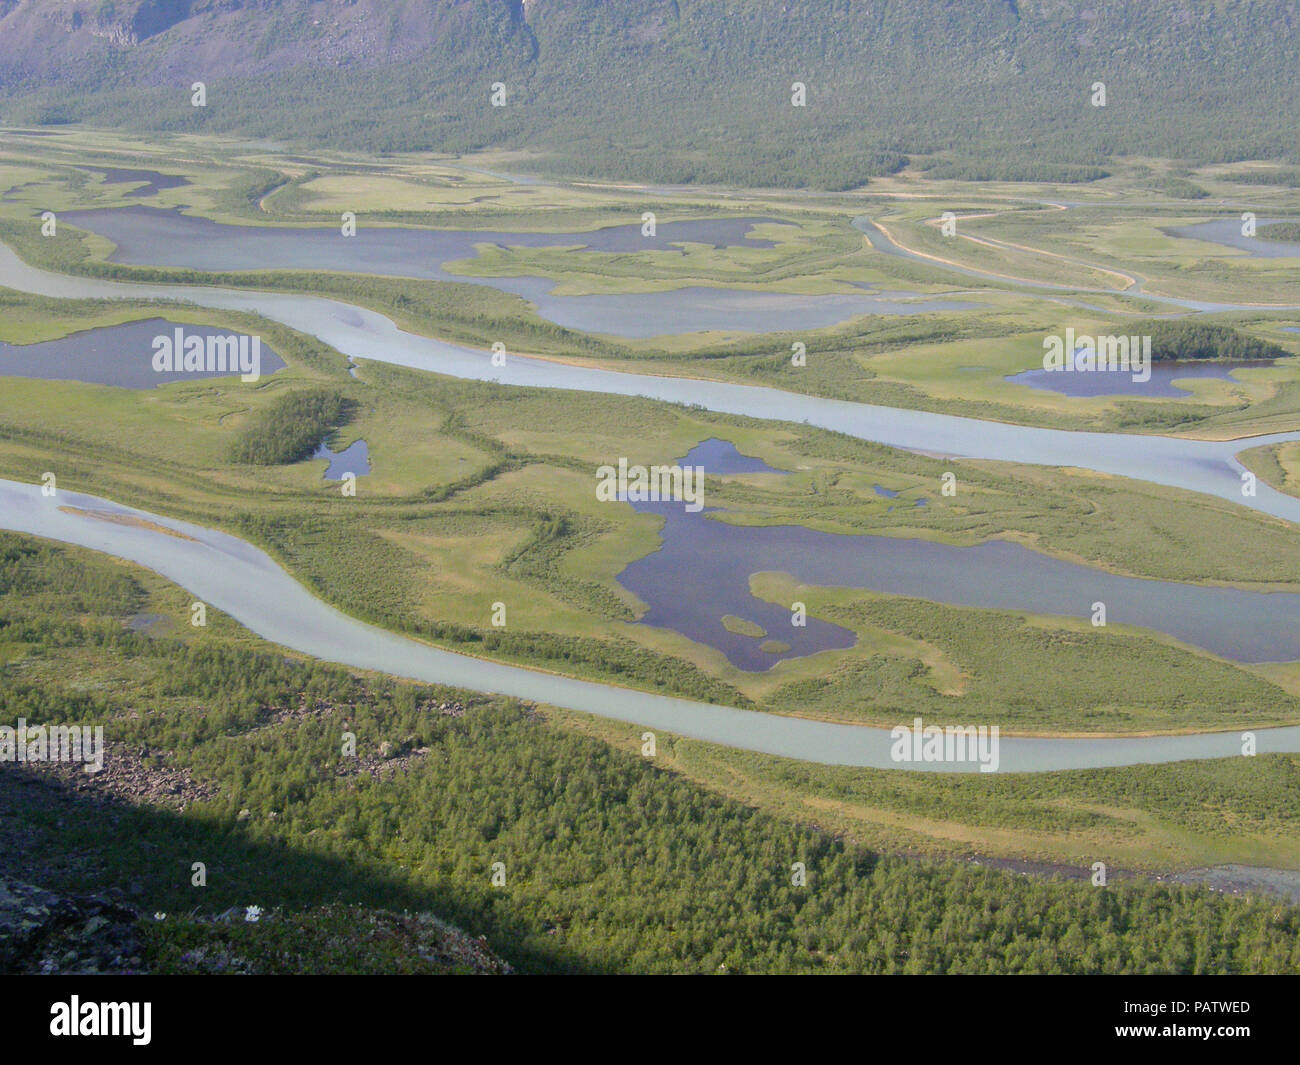 The Beauty of Northern Sweden  - Rapaätno delta. Rapaätno delta, Sarek, Northern Sweden. 30.6.2009. - Stock Image